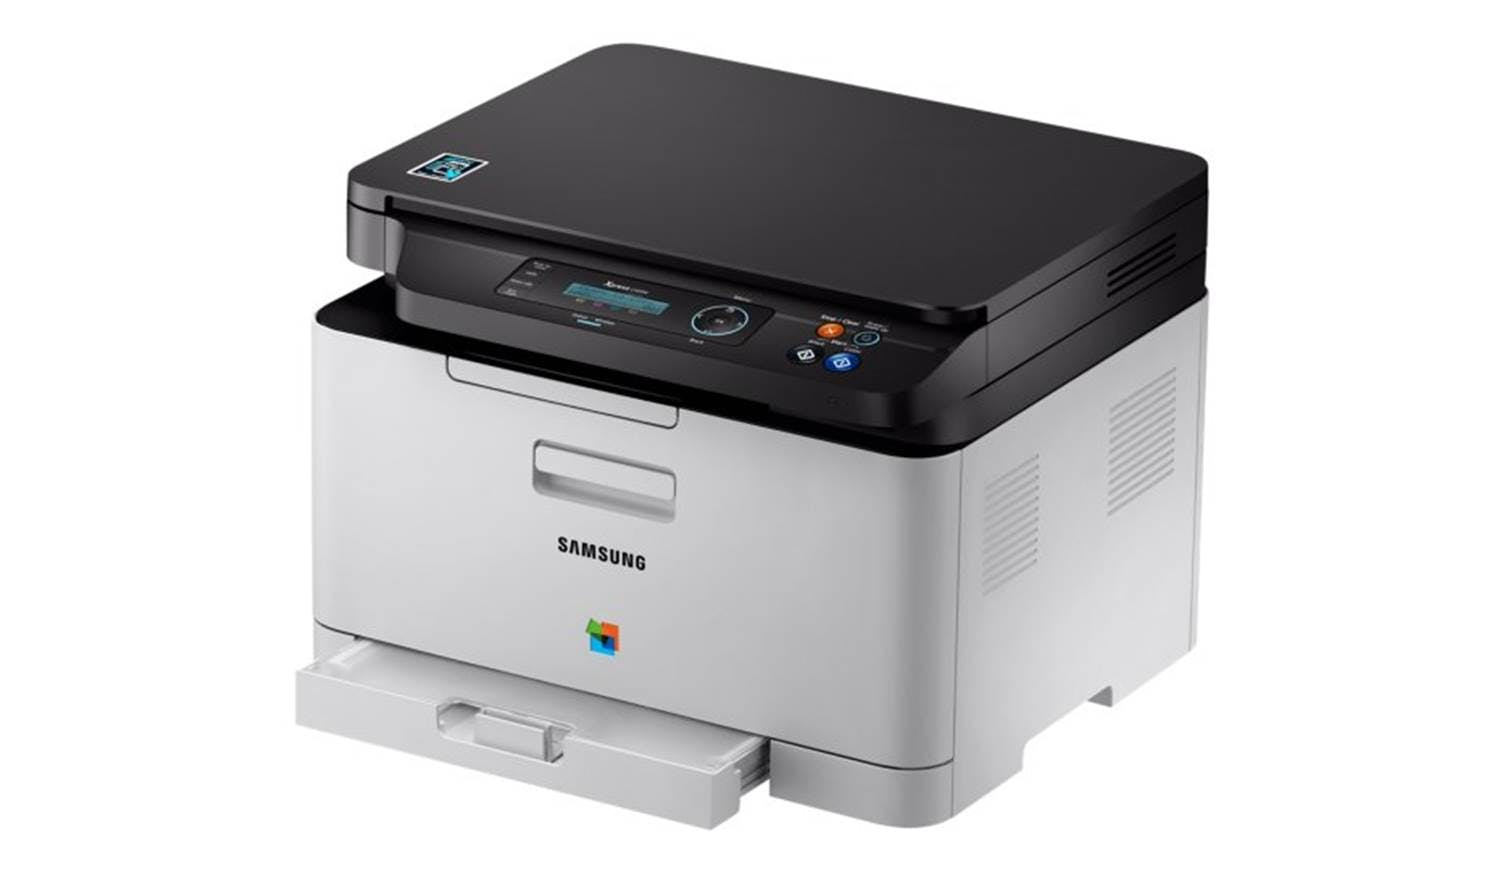 samsung sl c480w all in one colour laser printer harvey norman singapore. Black Bedroom Furniture Sets. Home Design Ideas